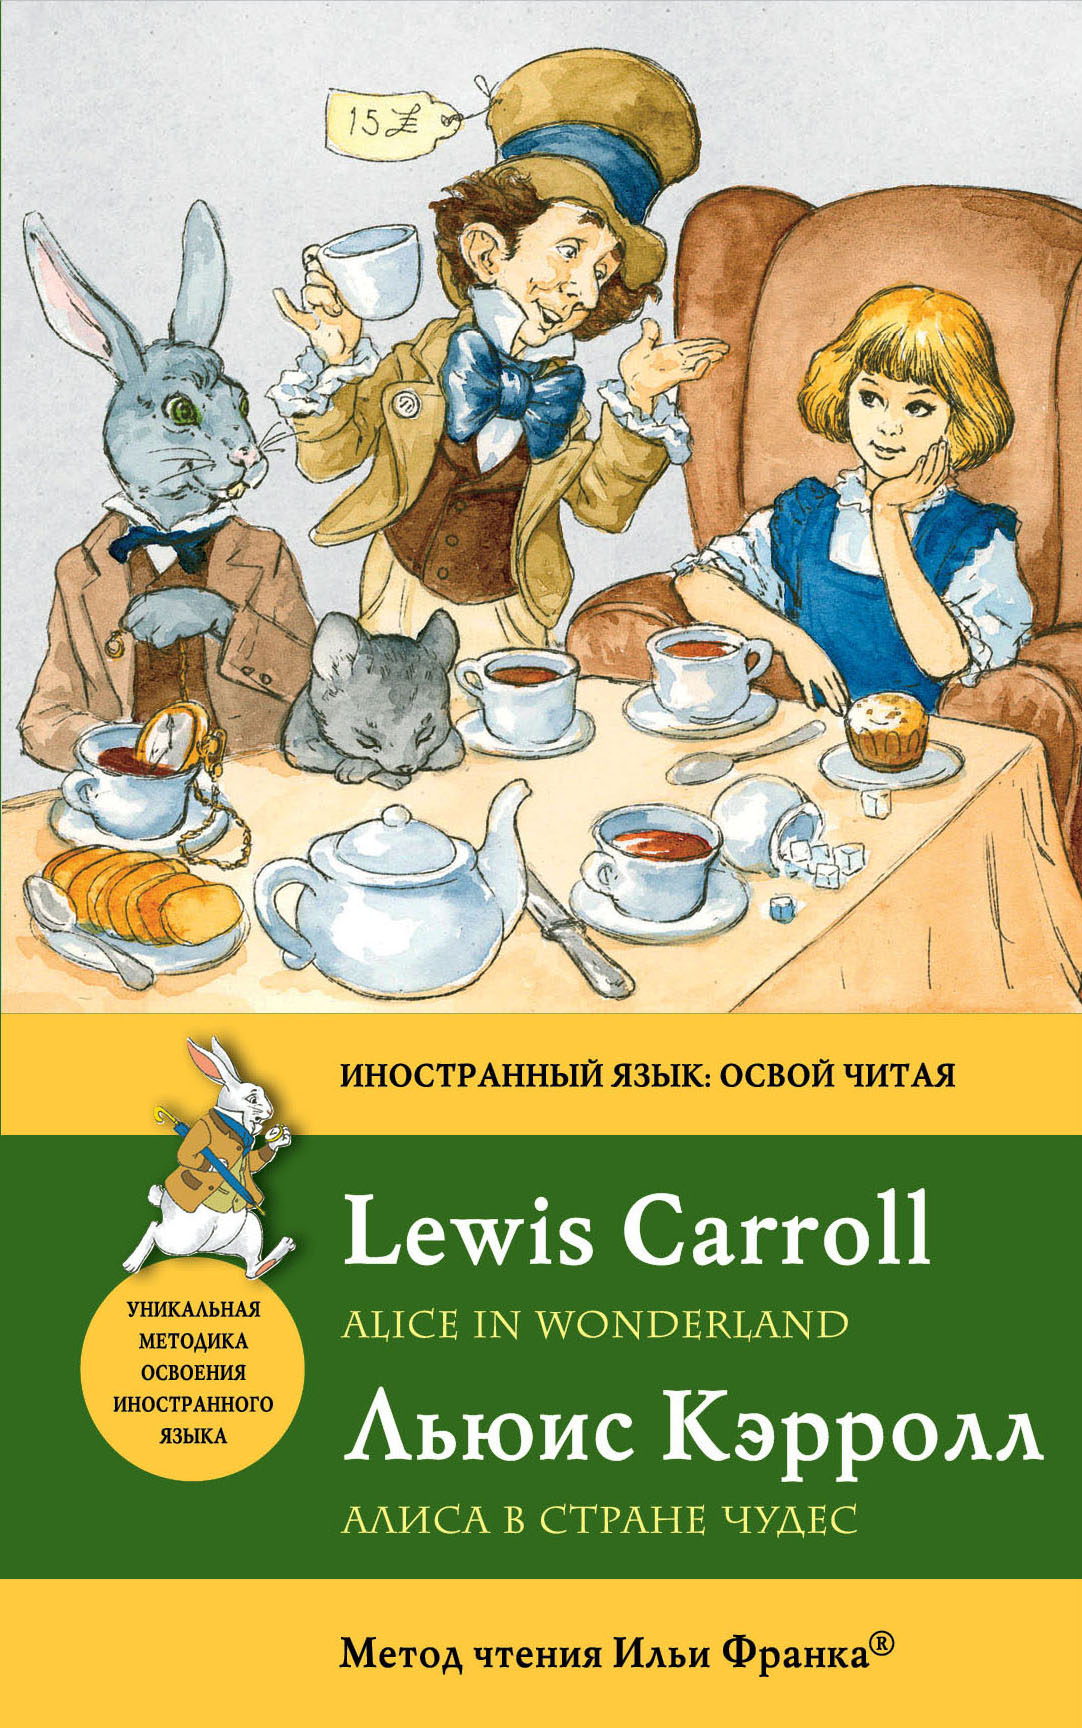 Кэрролл Льюис Алиса в Стране чудес = Alice in Wonderland: метод чтения Ильи Франка - страница 0